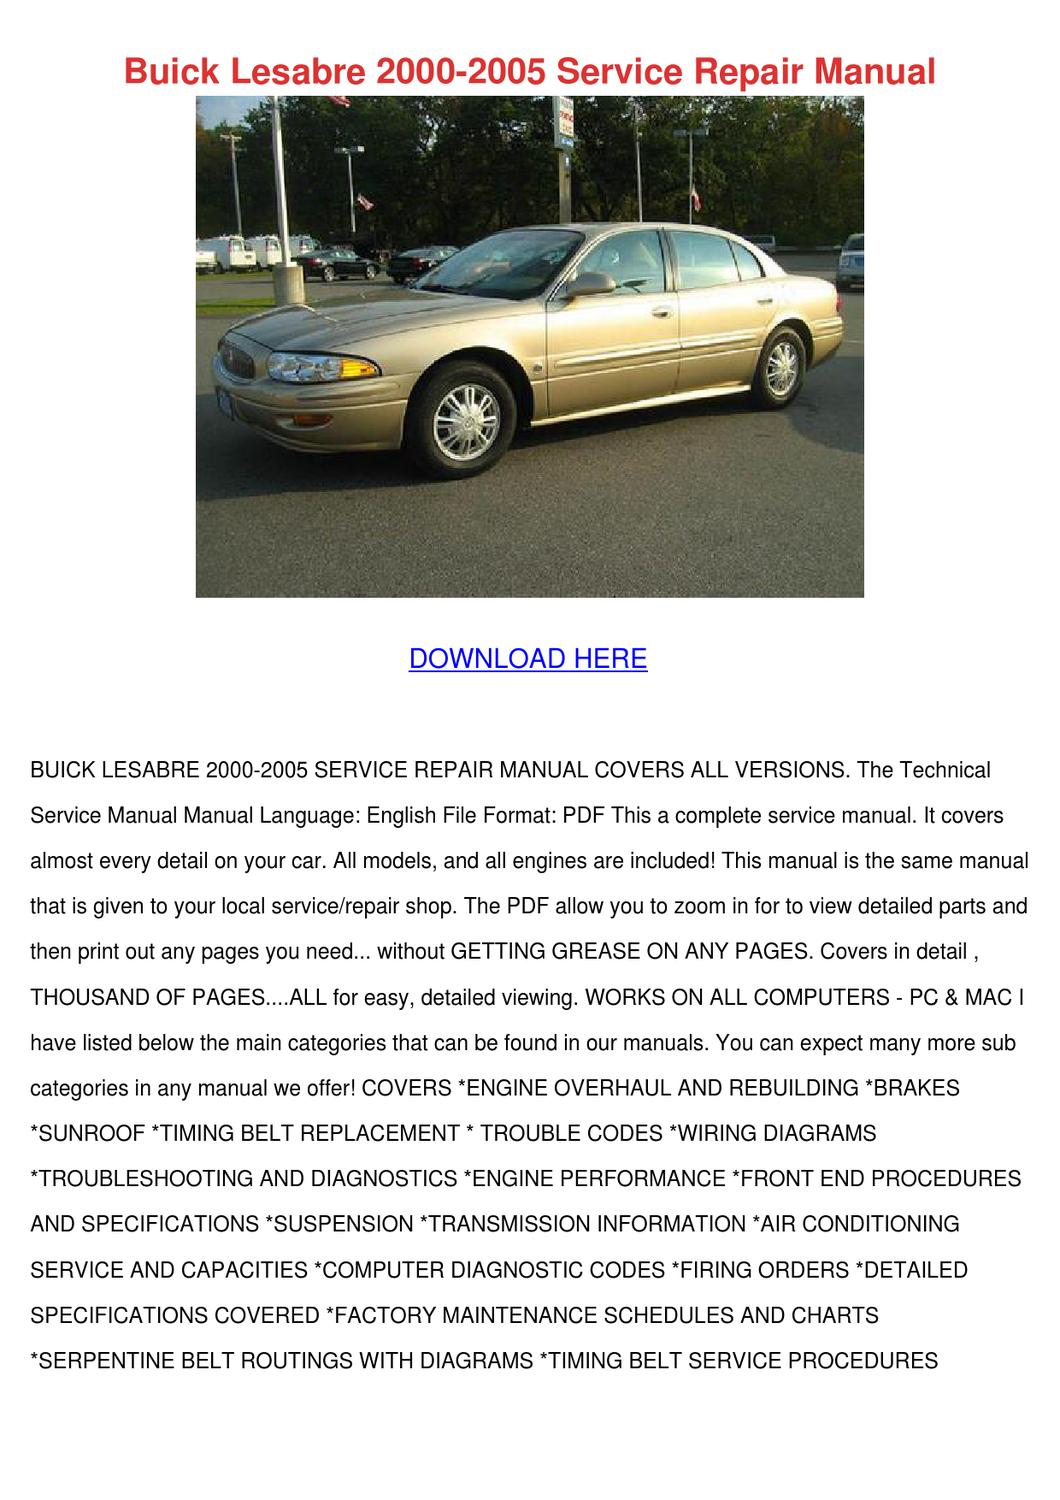 hight resolution of 1998 buick regal gs service manual